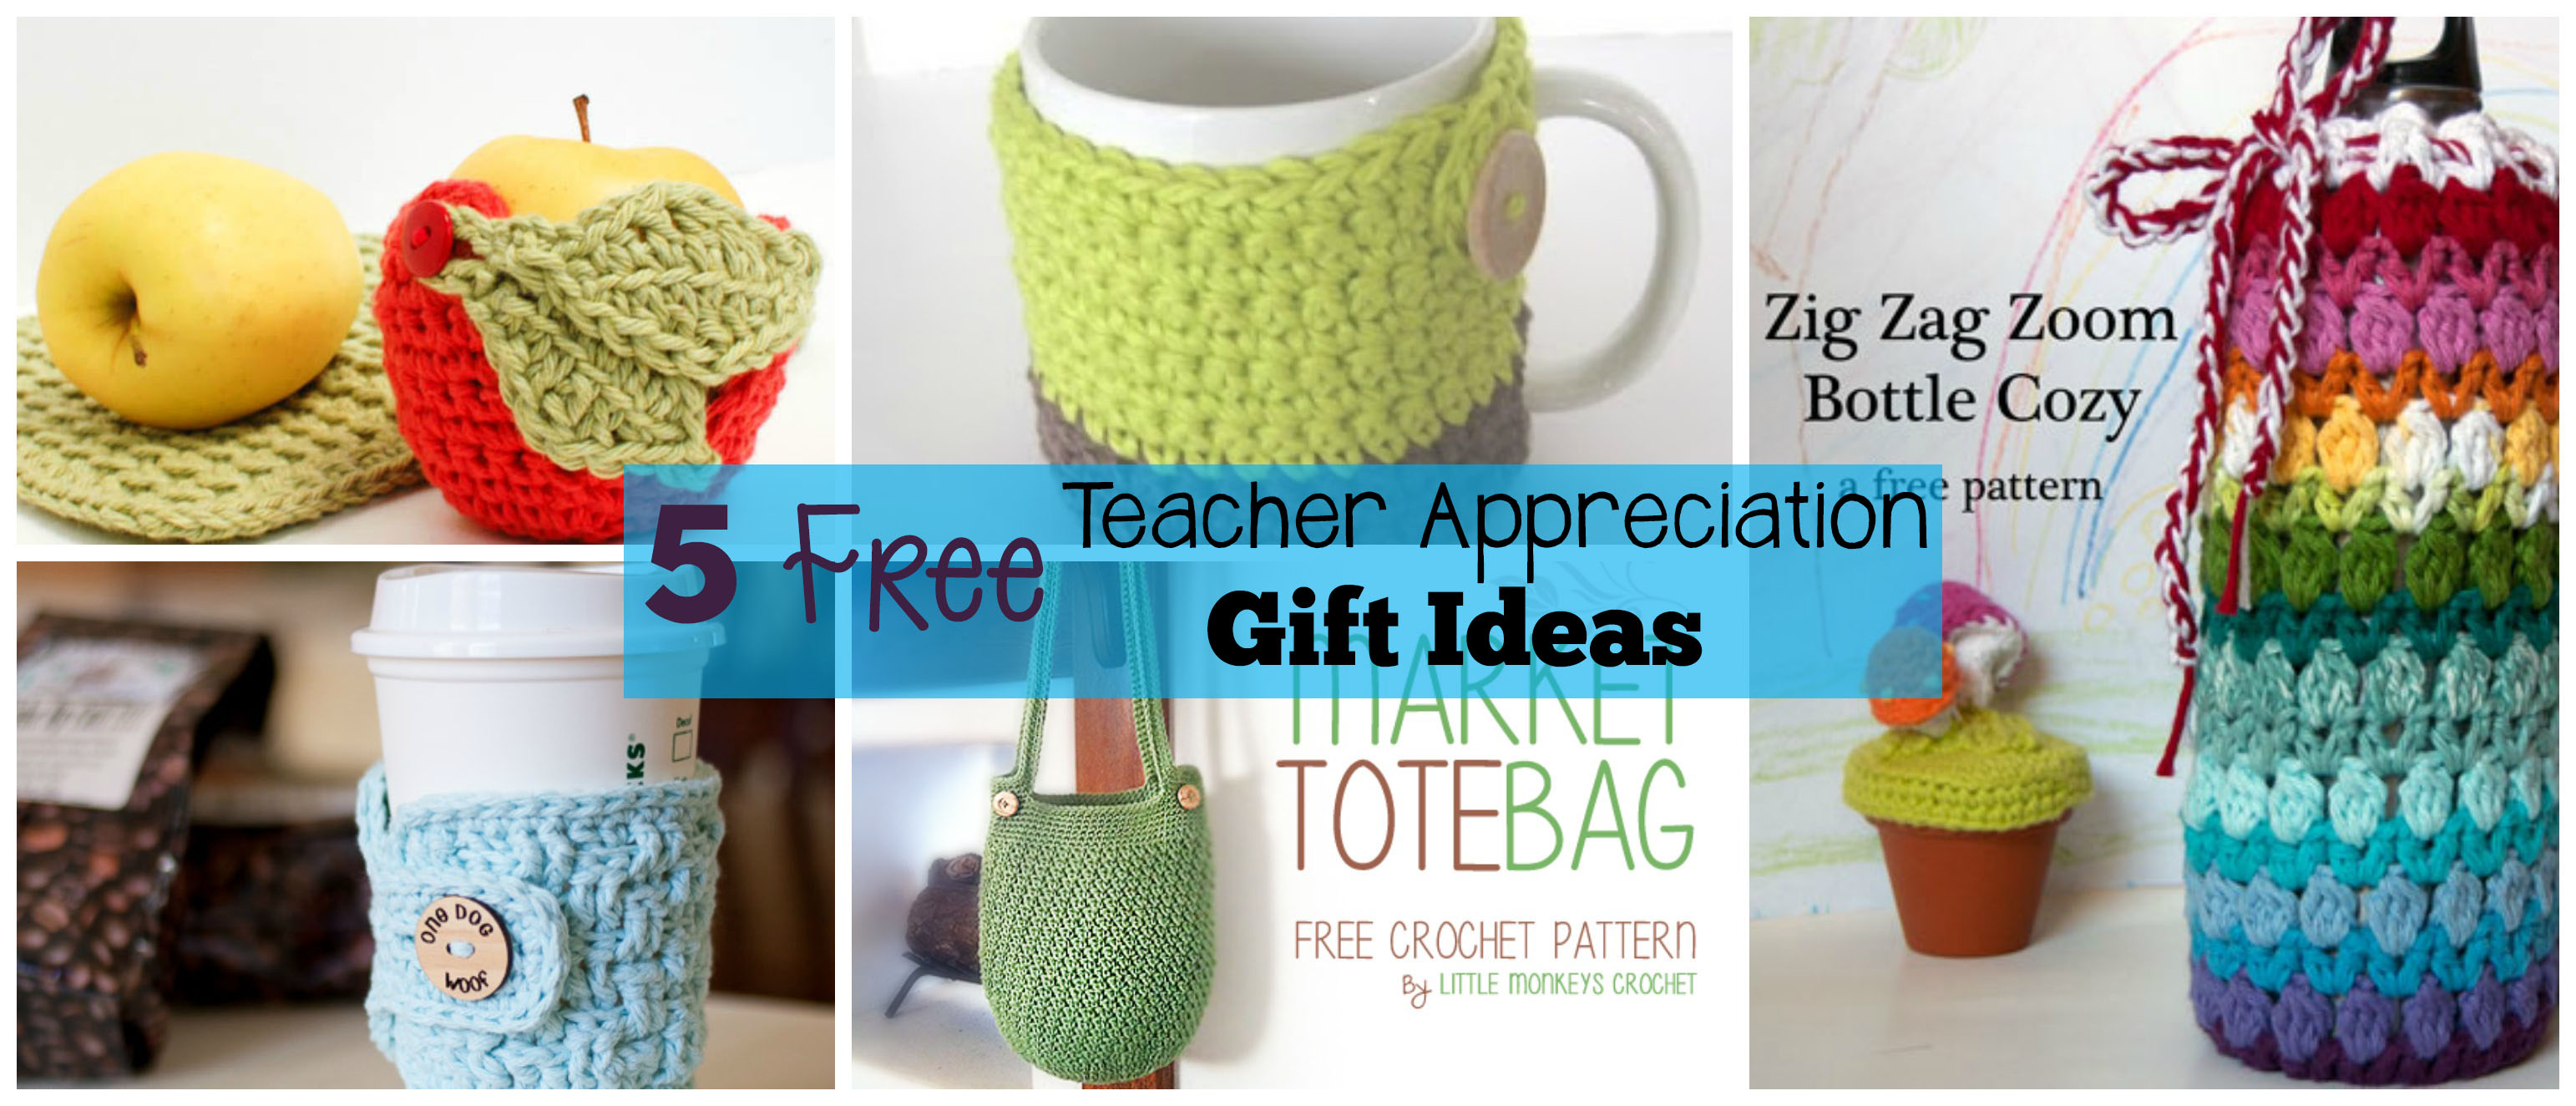 Free Crochet Patterns Gift Ideas : 5 Free Crochet Teacher Appreciation Gift Ideas - The ...